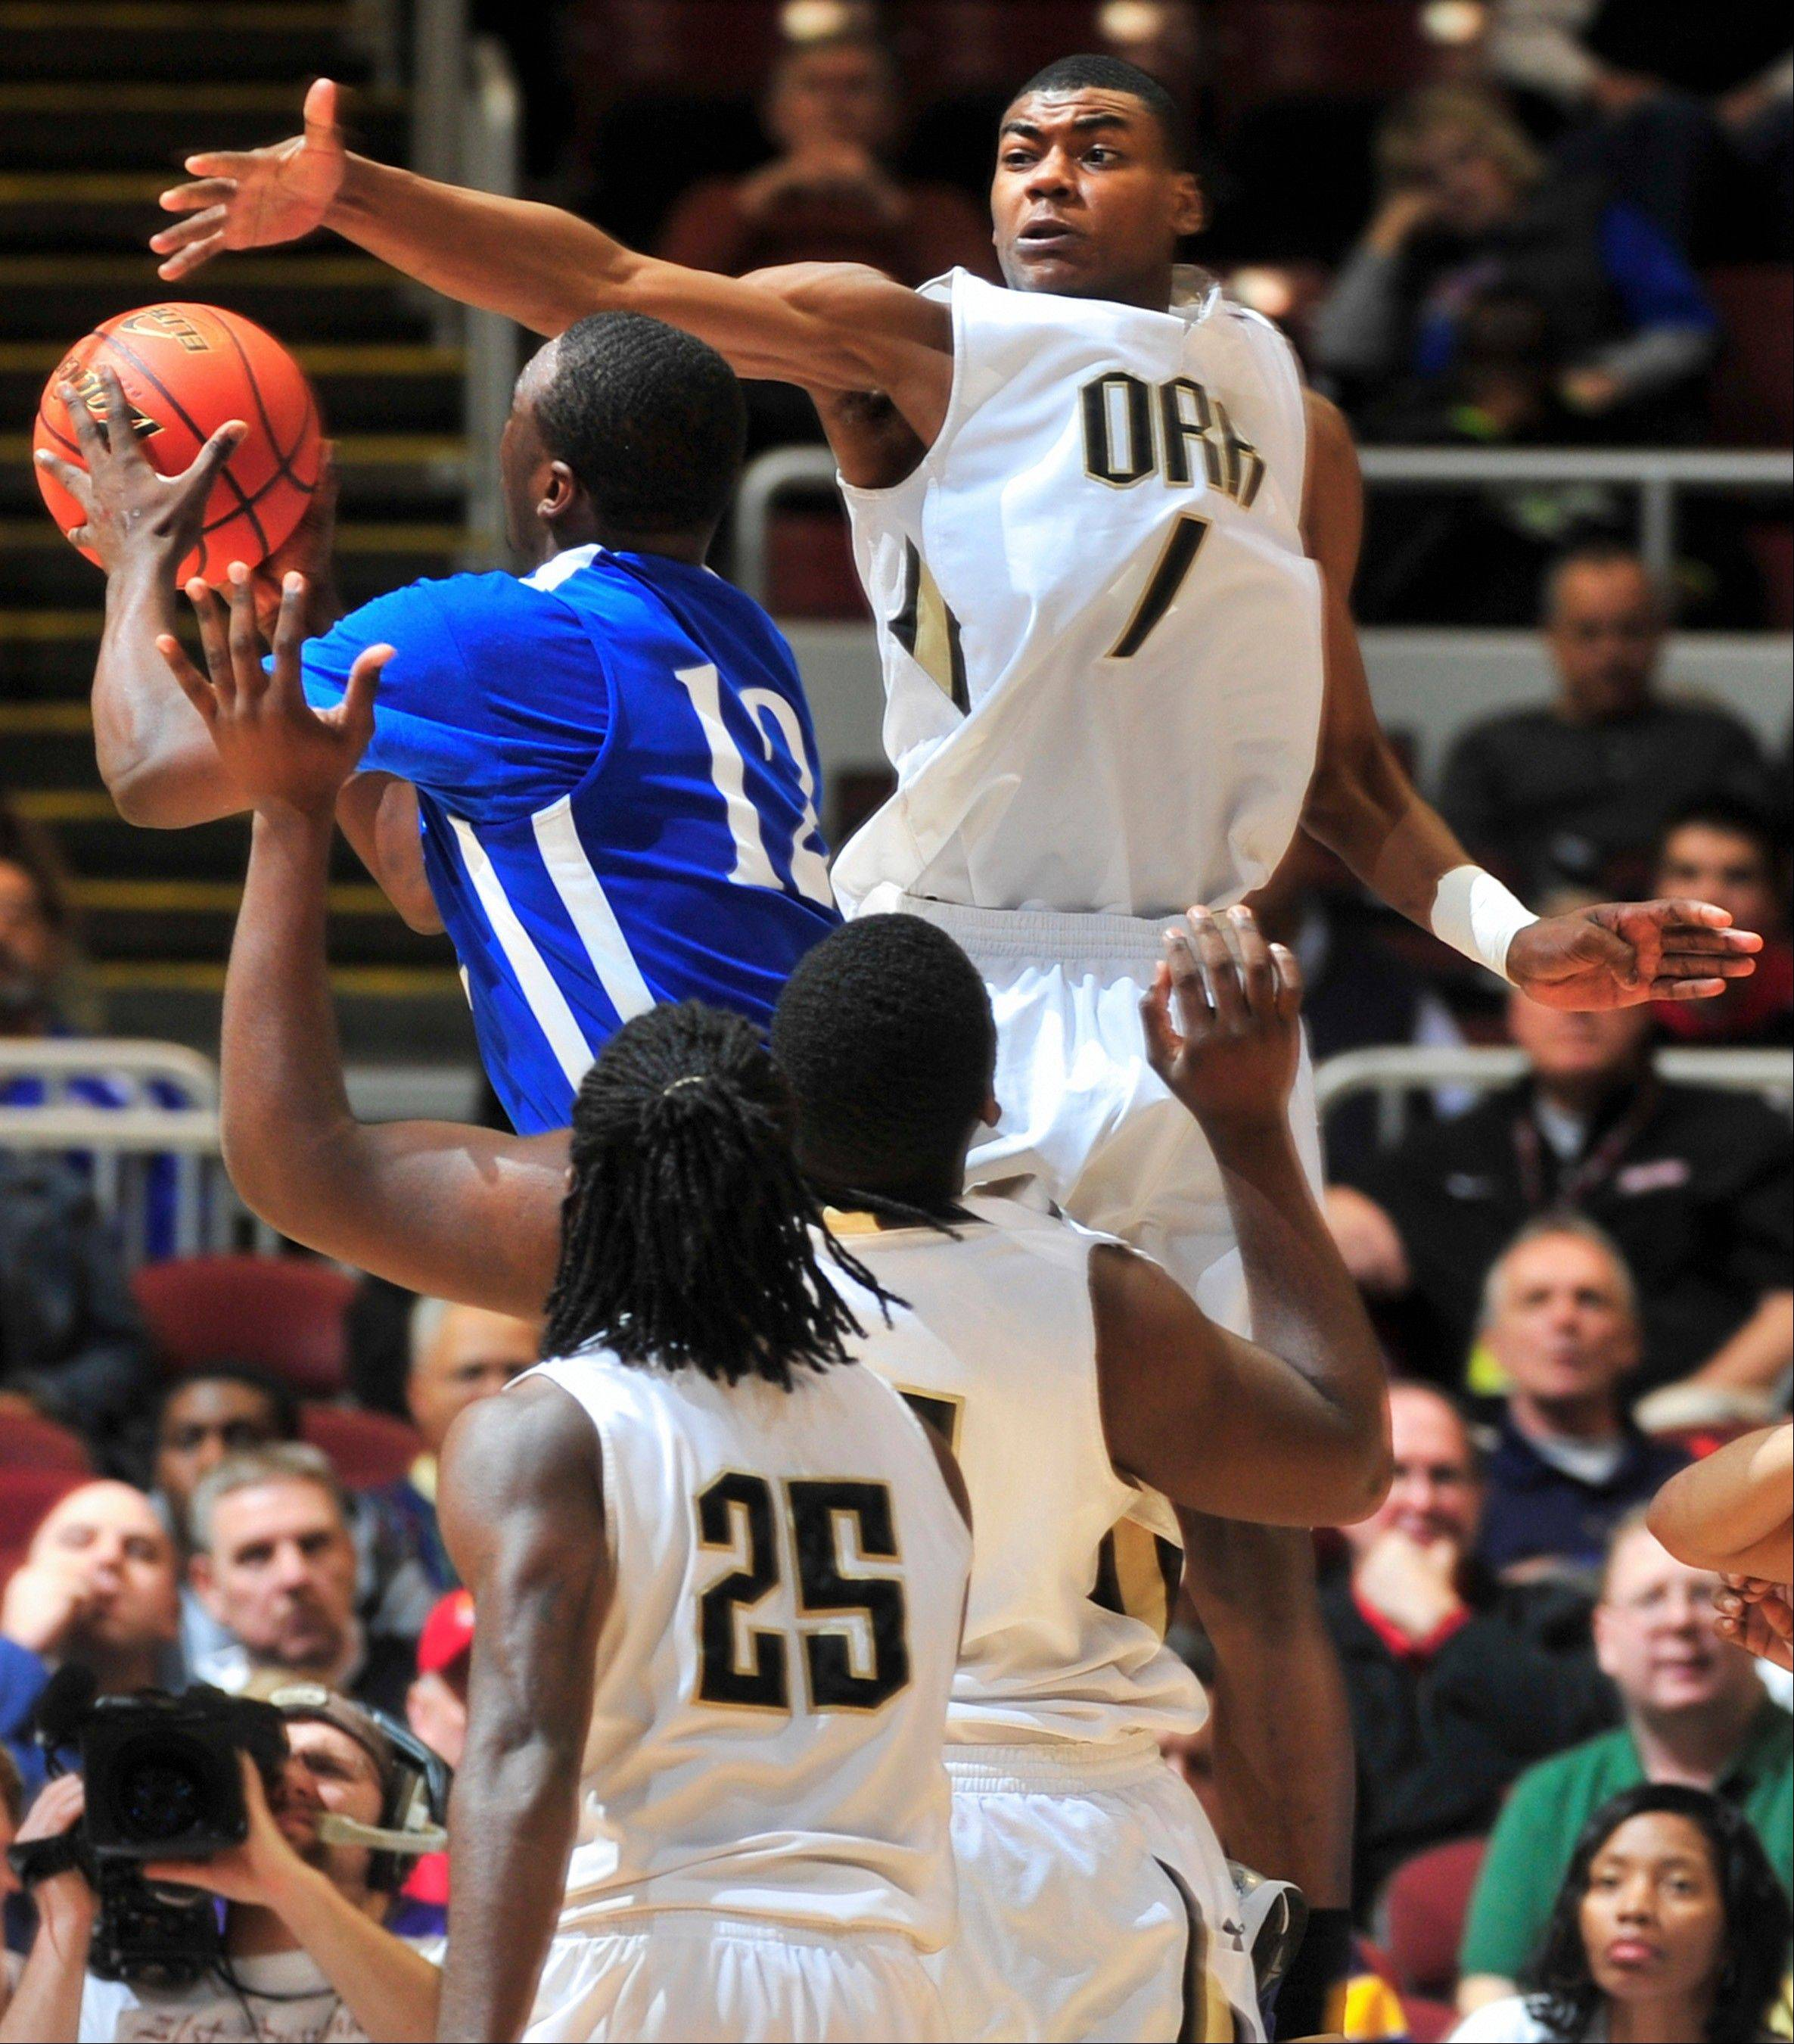 Chicago Orr�s Louis Adams rises to block the shot of Cahokia�s Vincent Jackson Jr. during Cahokia�s Class 3A state semifinal victory Friday in Peoria.